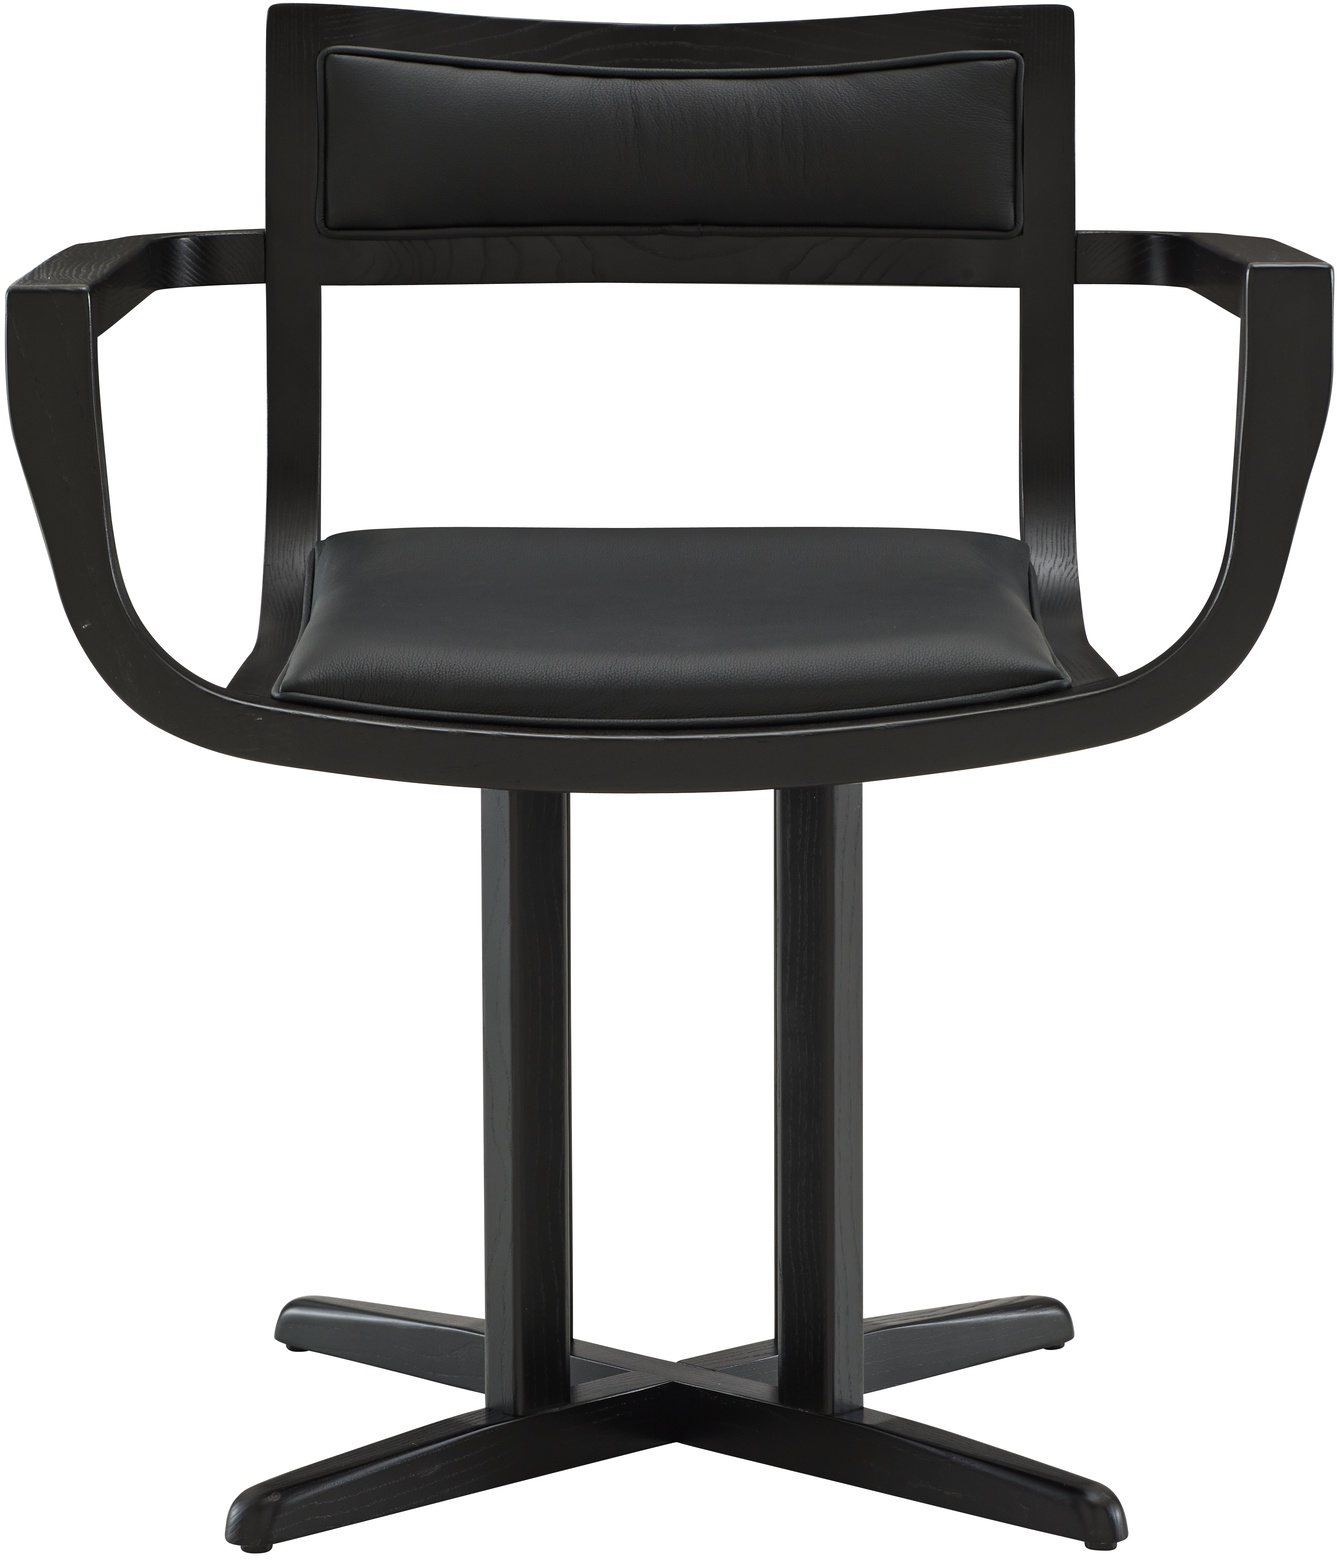 Island dining chair by ligne roset modern dining chairs los angeles - Psi Ligne Roset